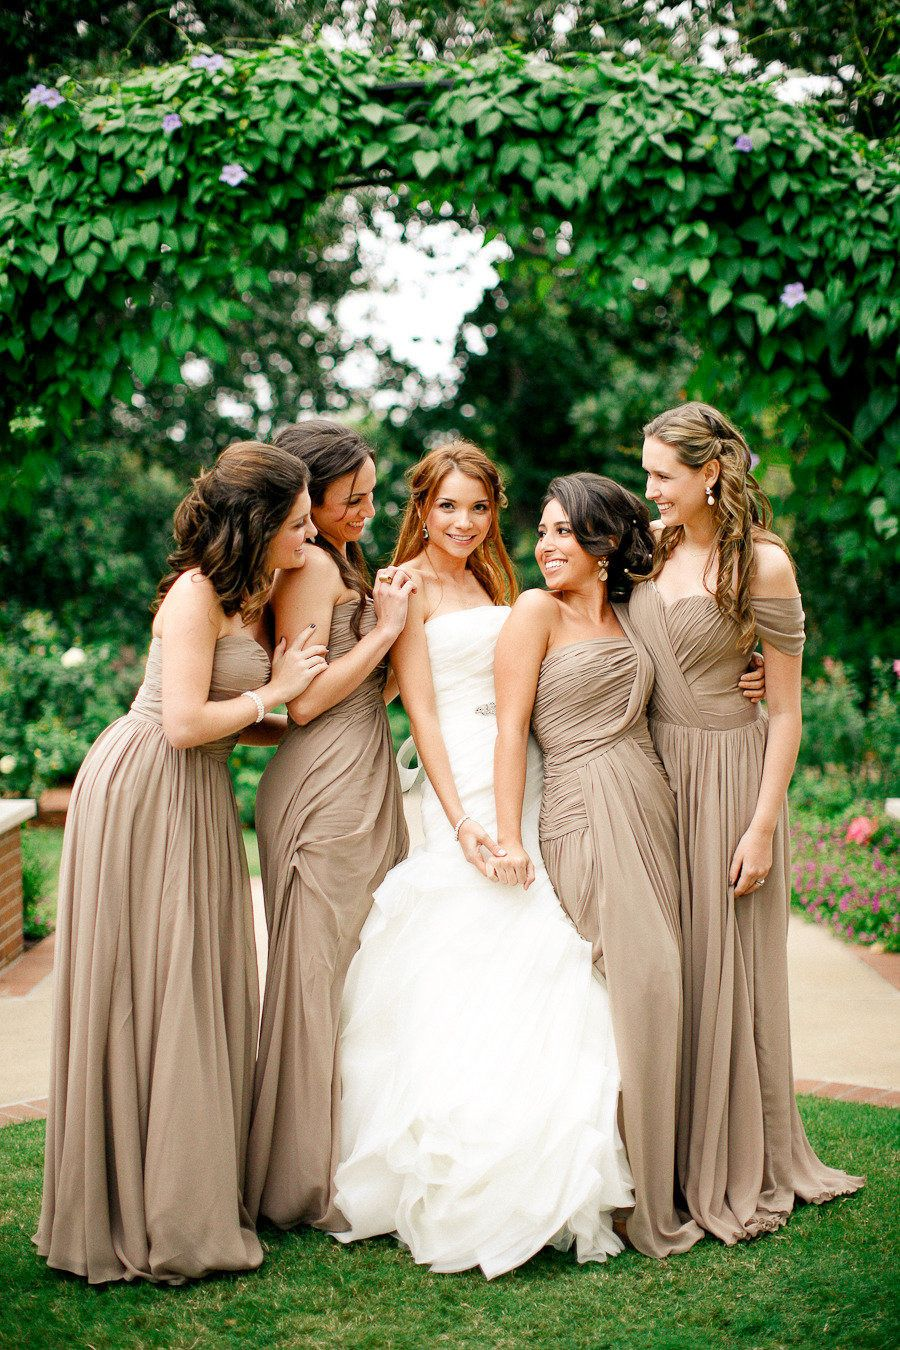 Fall wedding bridesmaid dresses fall wedding dresses pinterest fall wedding bridesmaid dresses ombrellifo Image collections